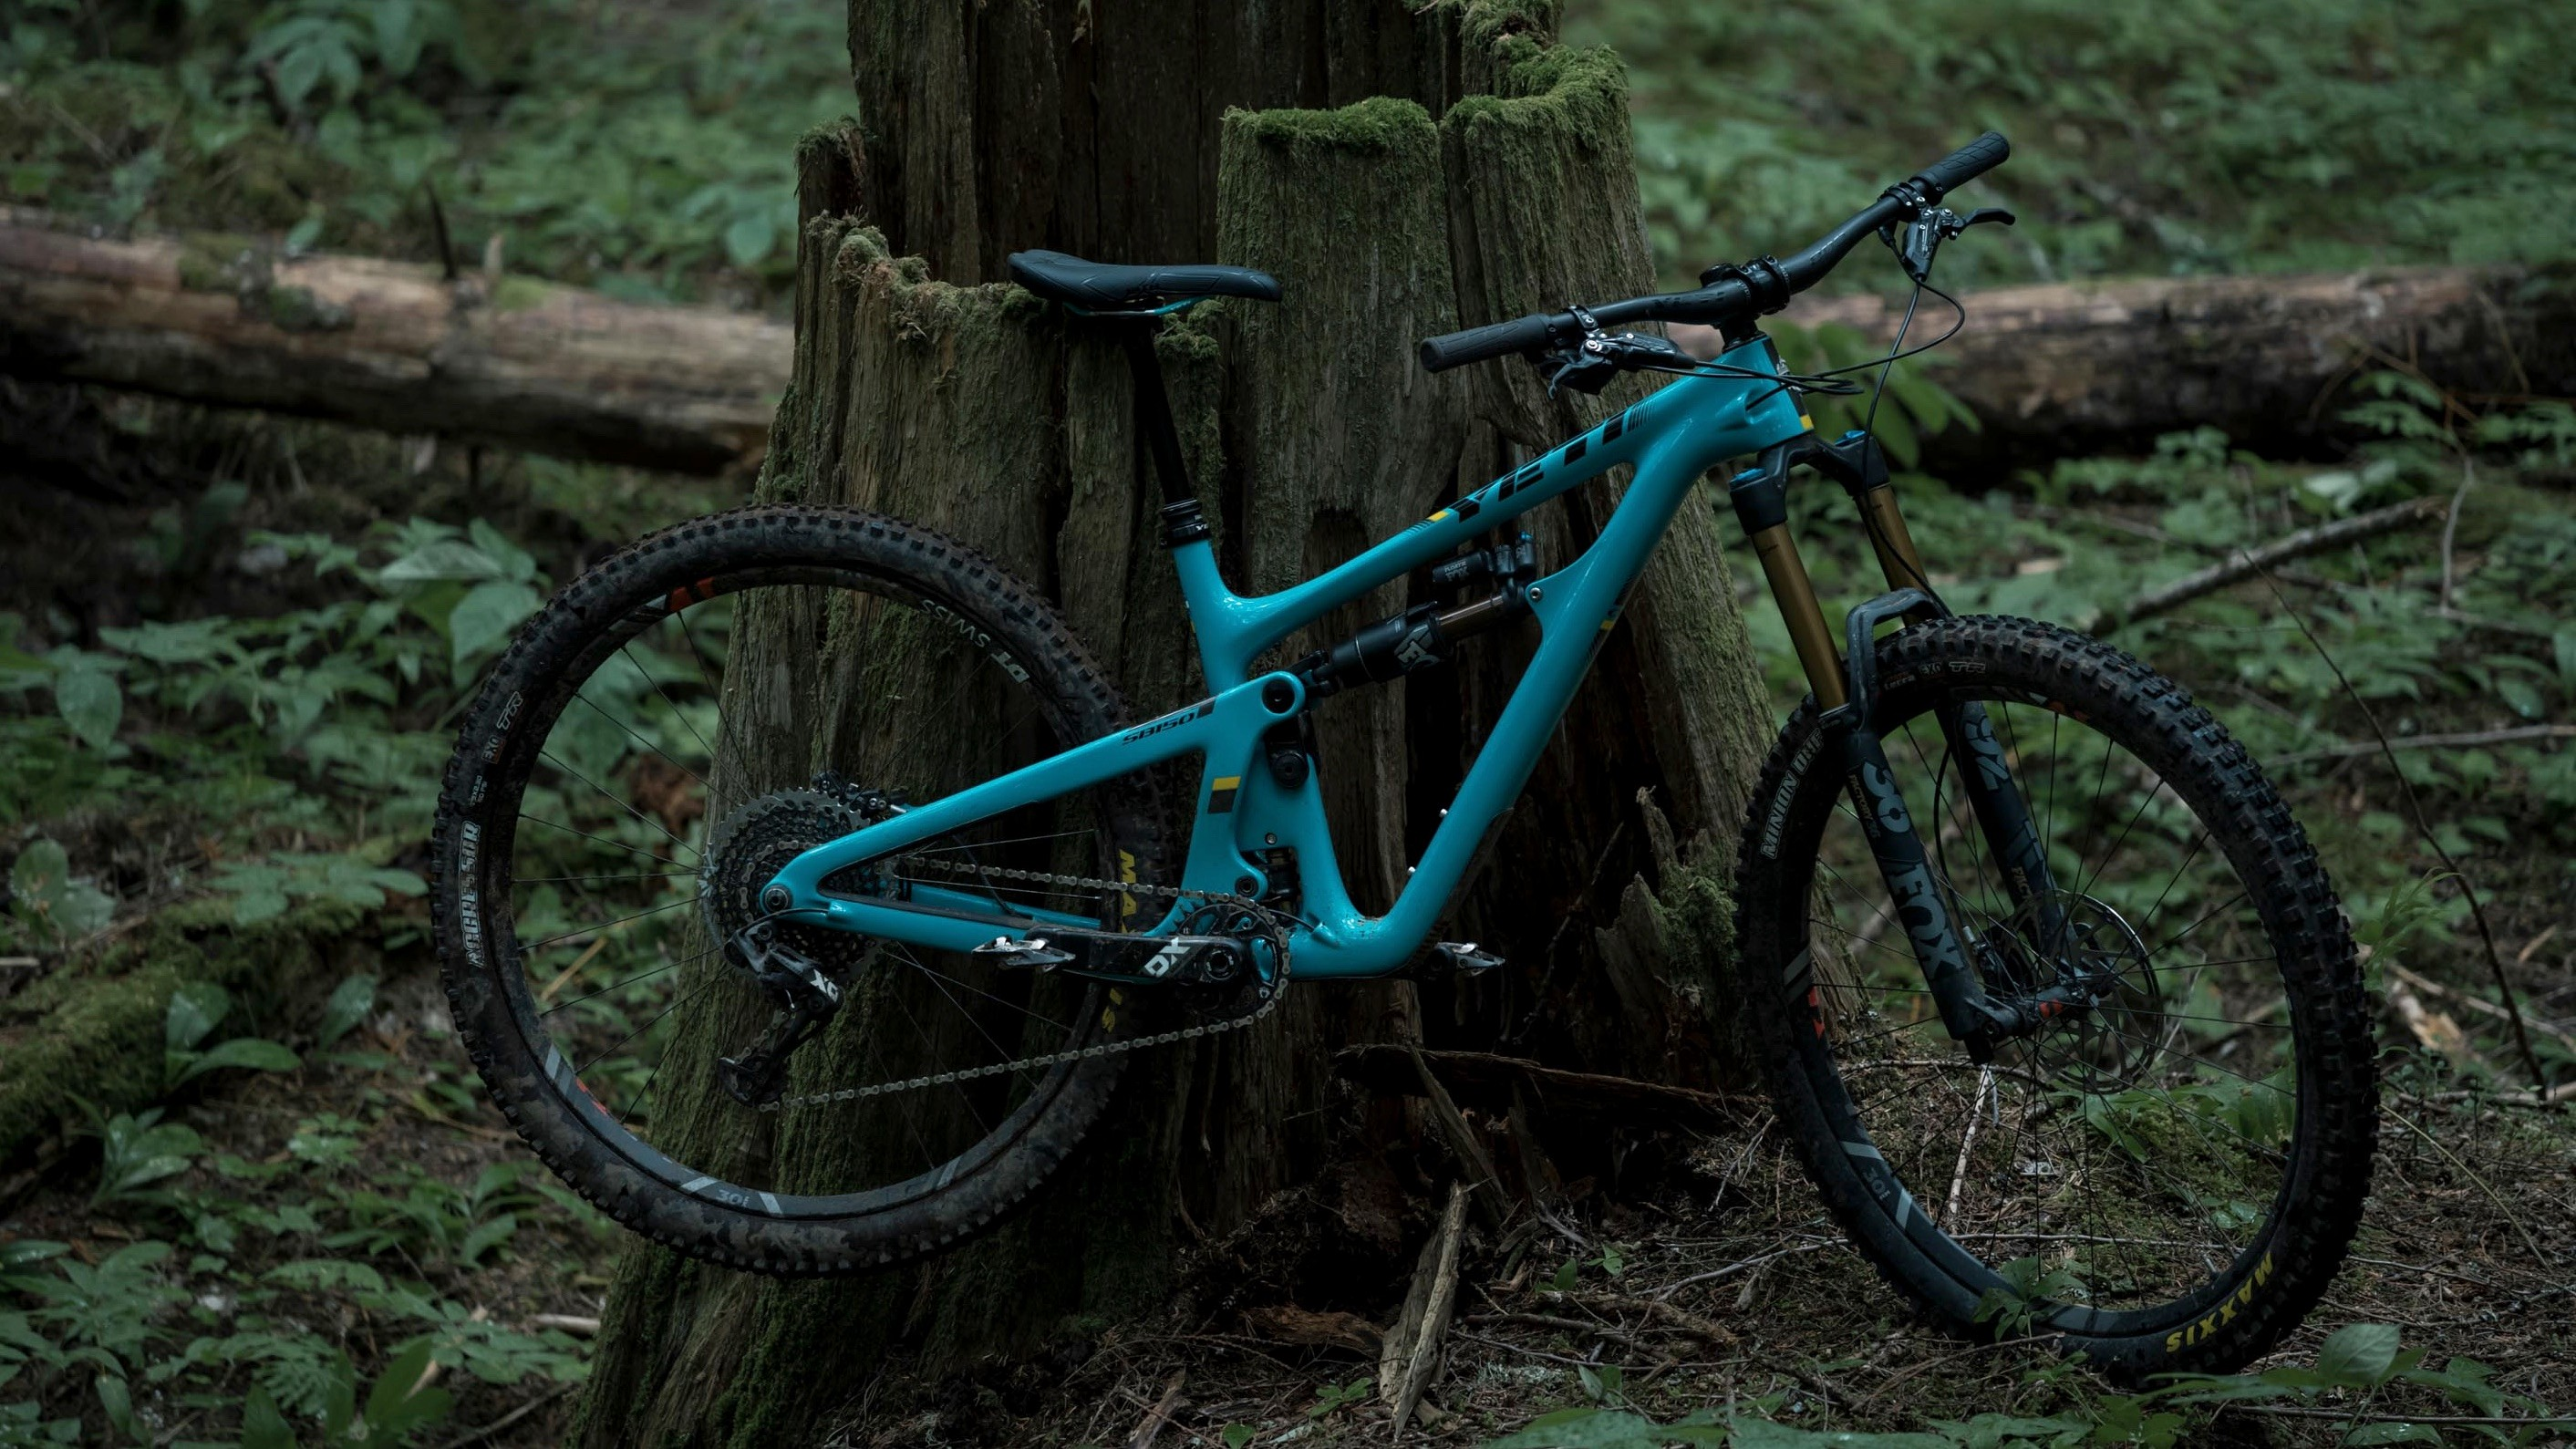 The SB150 will be raced, probably rather successfully, by Richie Rude in the EWS